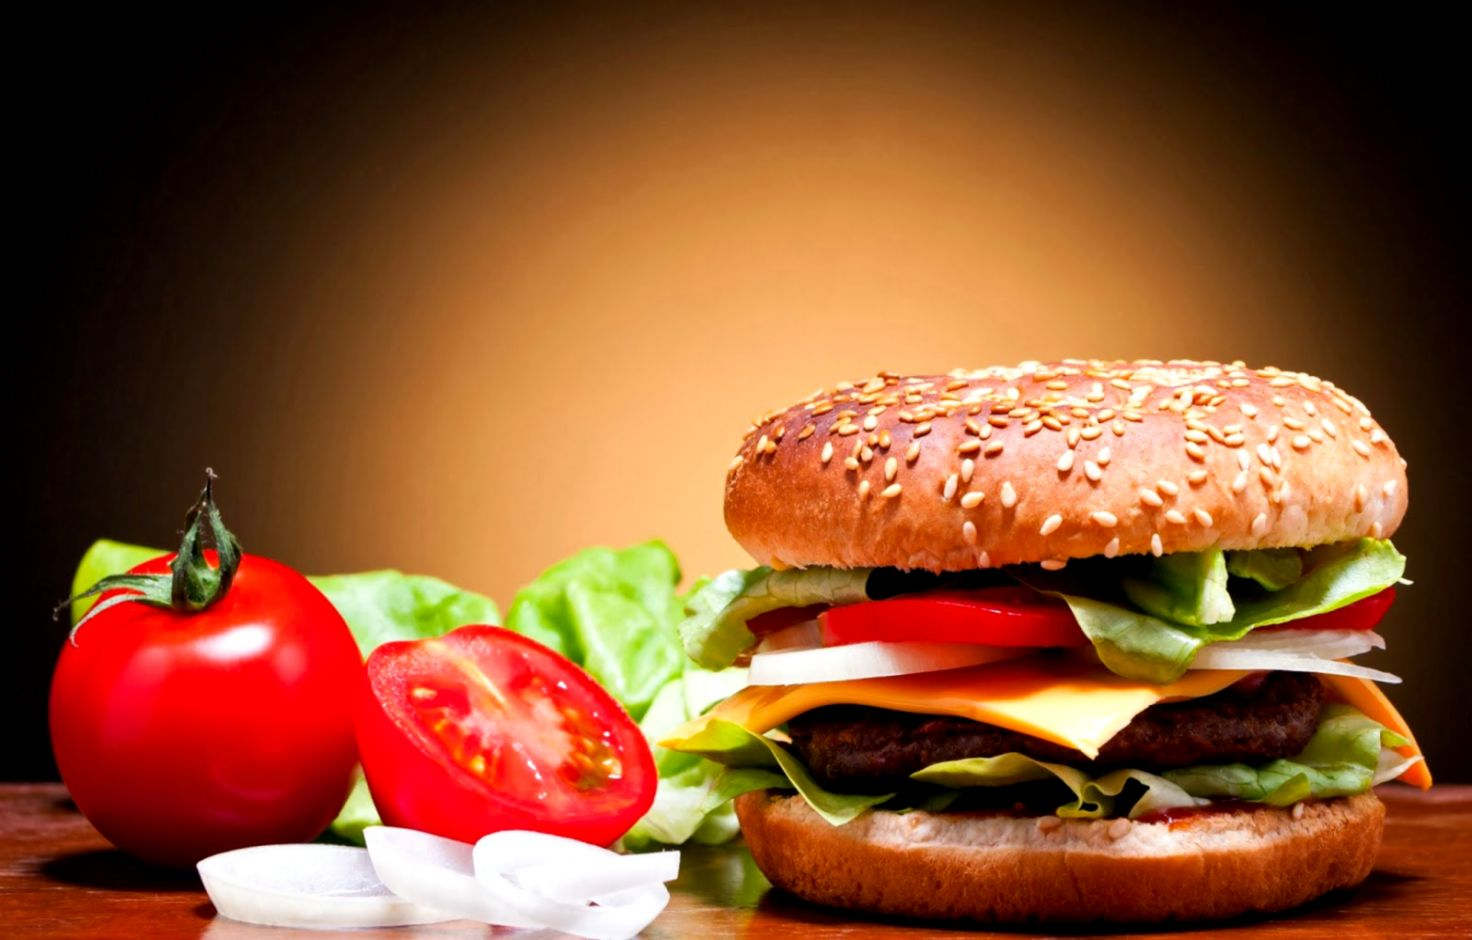 latest yummy fast food hd wallpapers free download